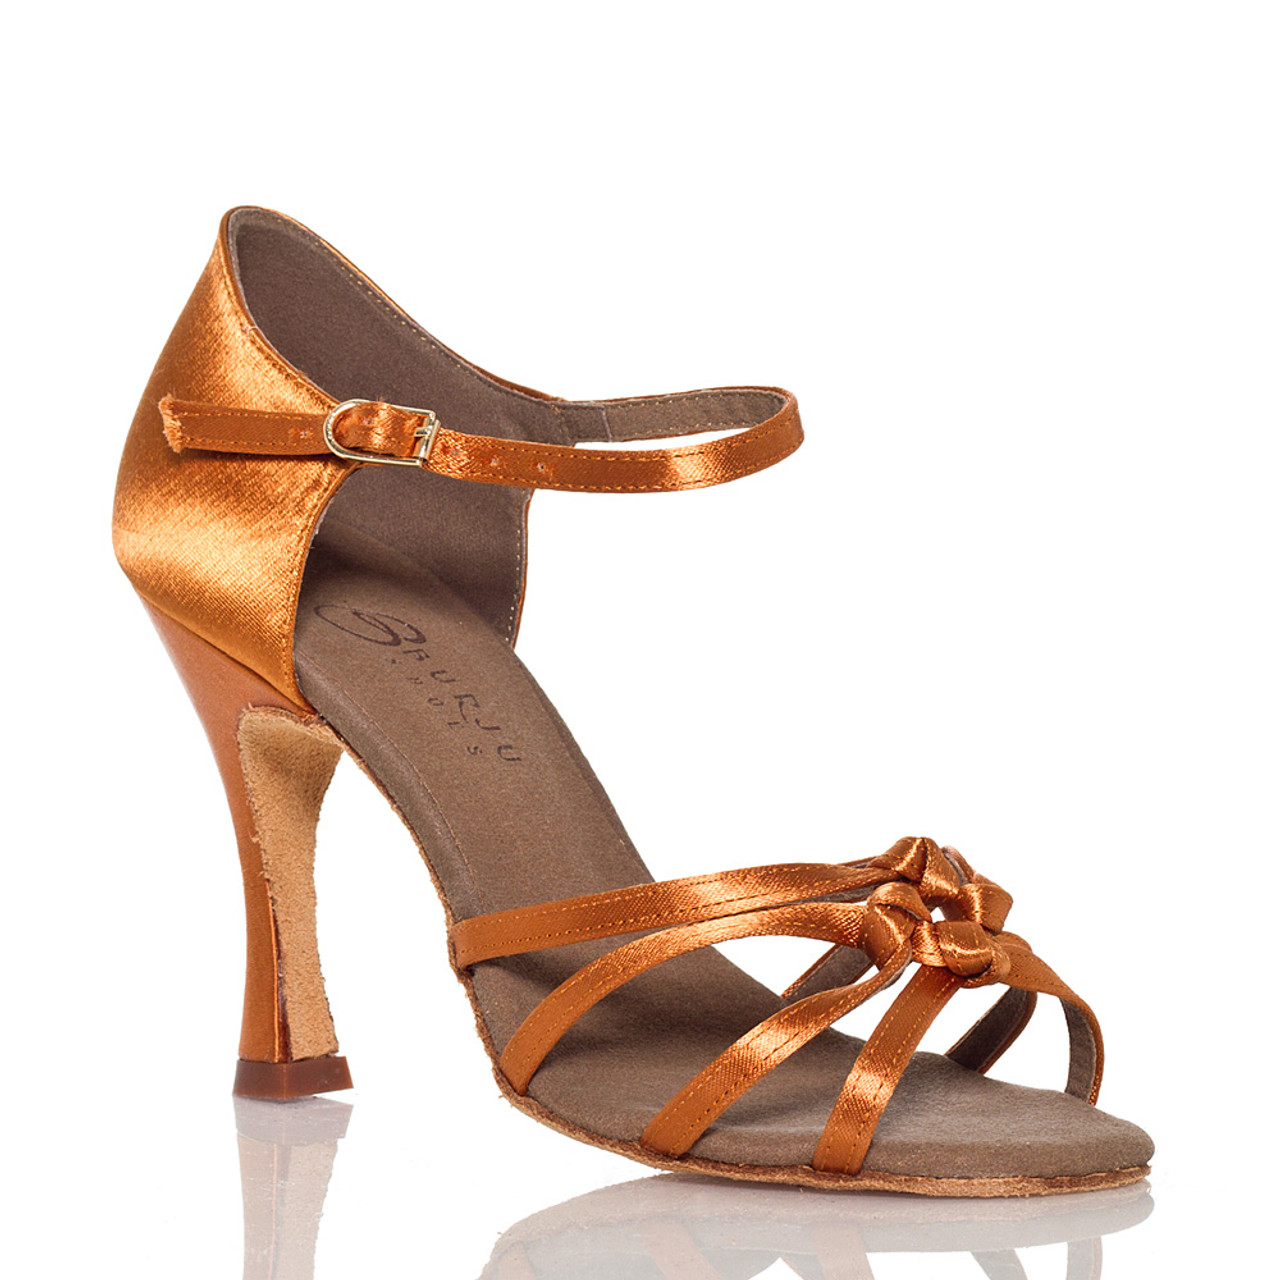 b10a8d8d4f4 Leyla - Nude Strappy Knot Dance Shoe - 3.75 inch Flared Heels